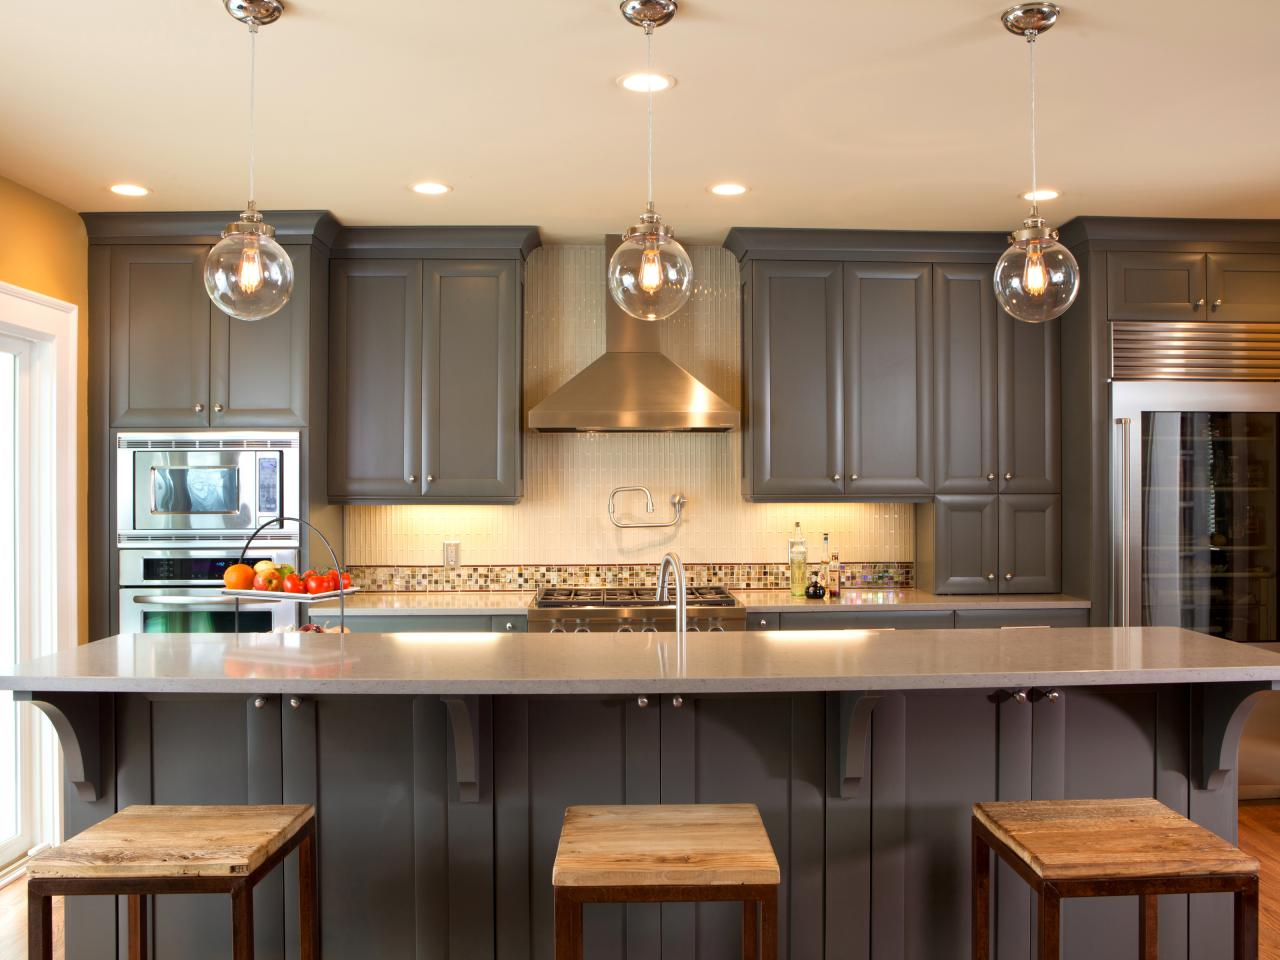 For Kitchen 25 Tips For Painting Kitchen Cabinets Diy Network Blog Made